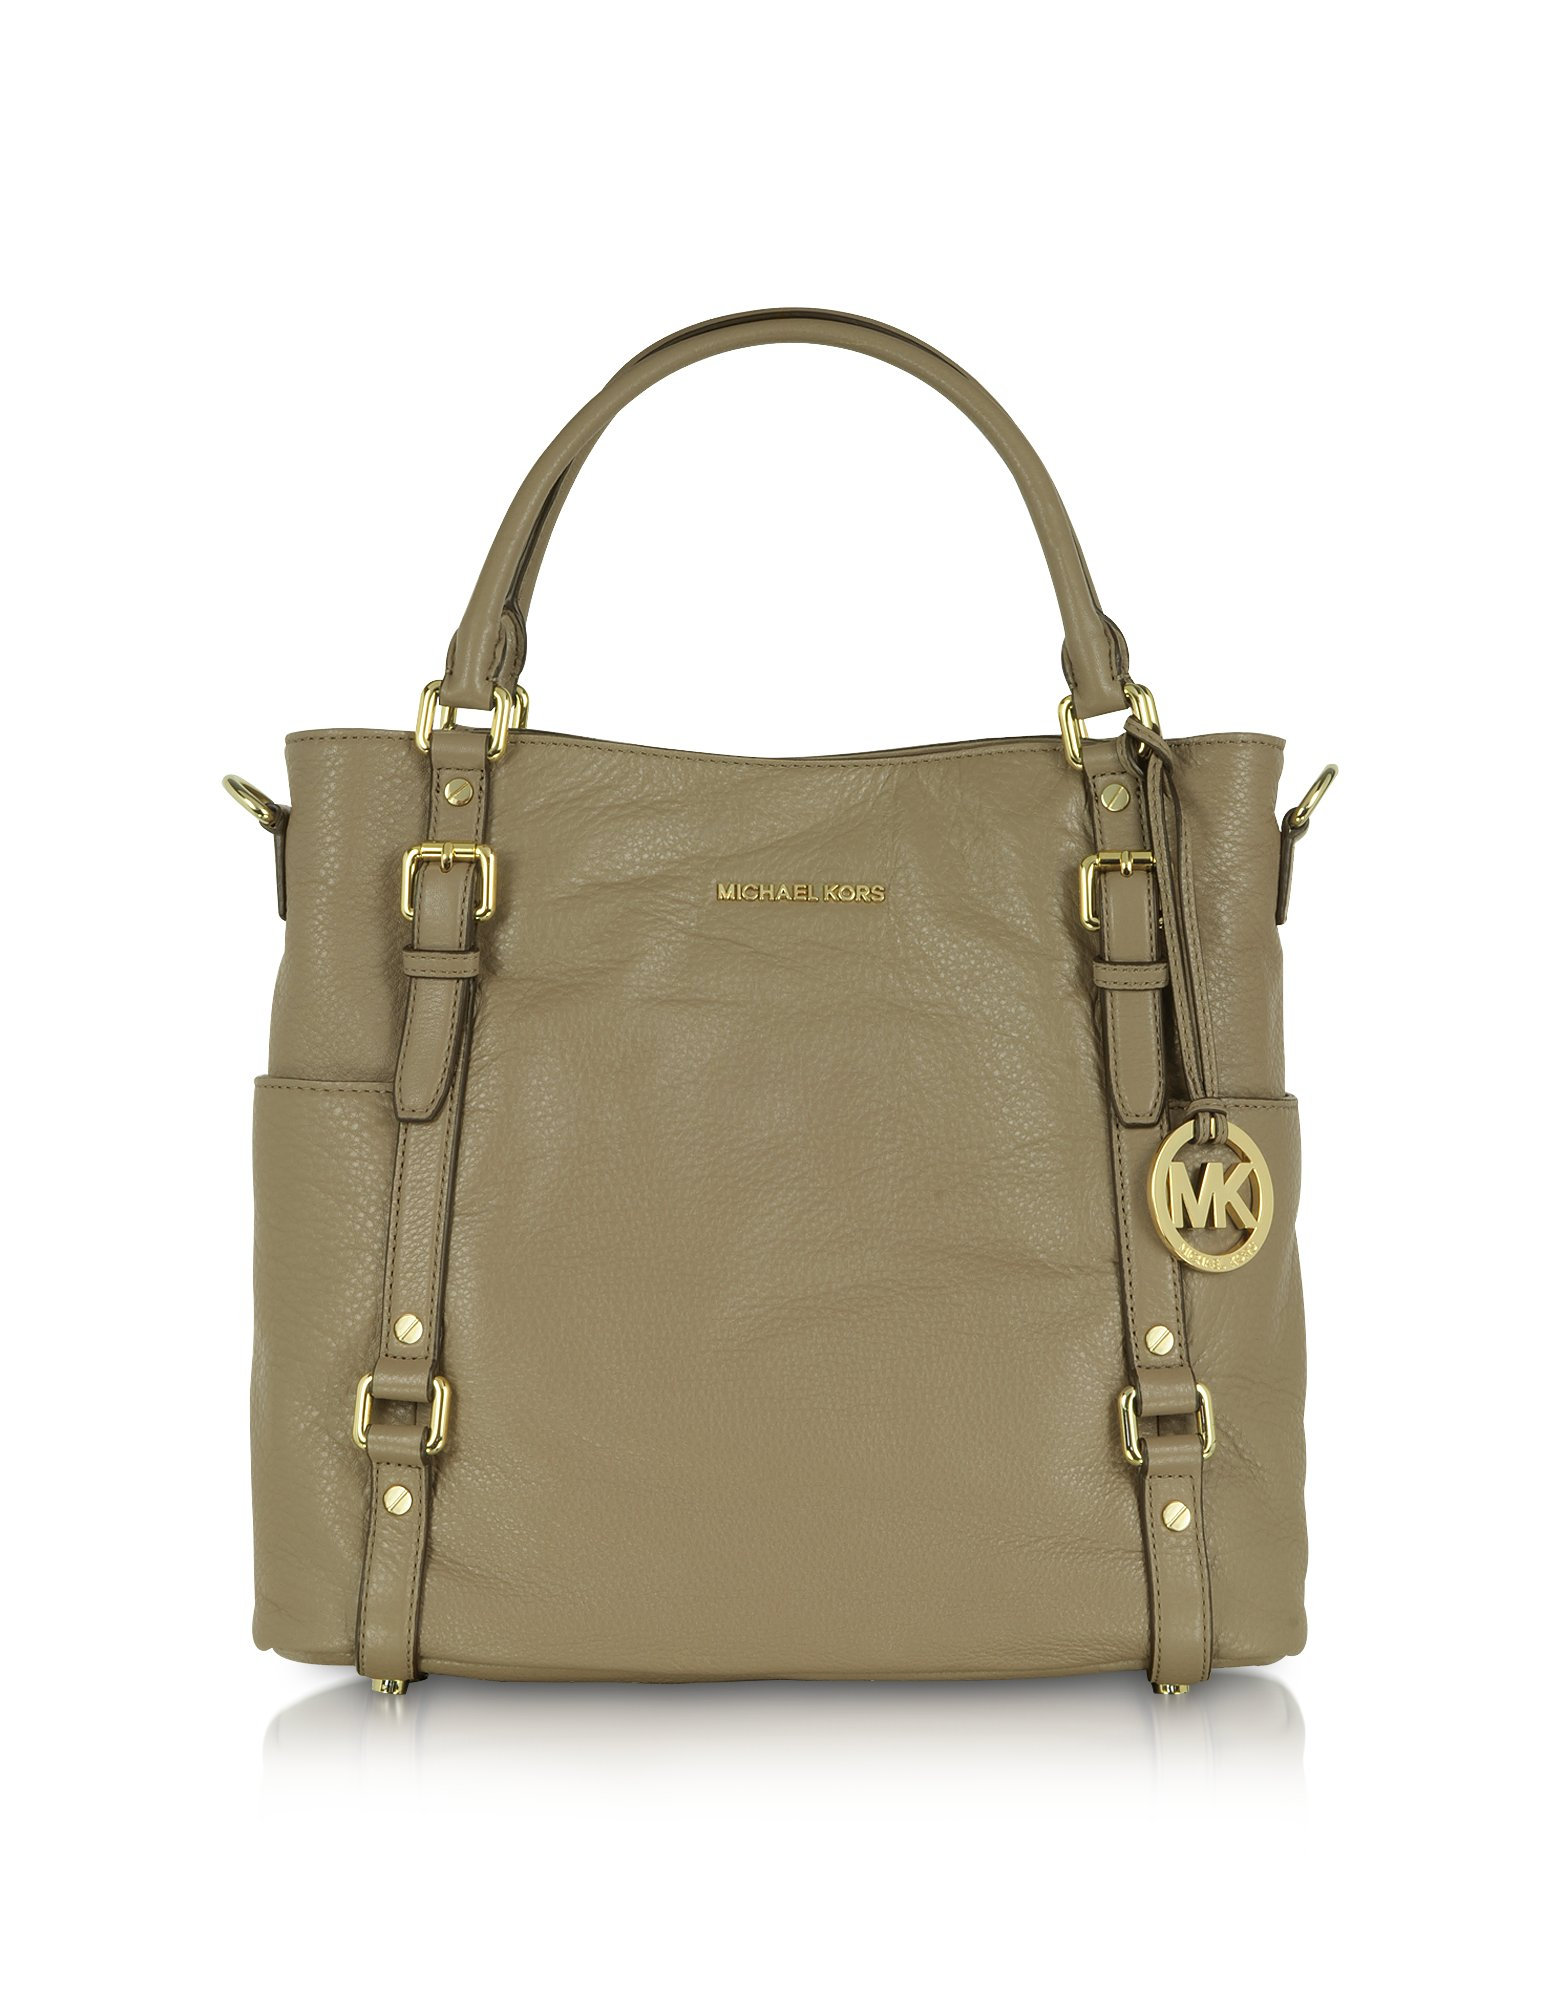 936ac49985940 uk lyst michael kors bedford genuine leather northsouth tote in natural  a186f bc828